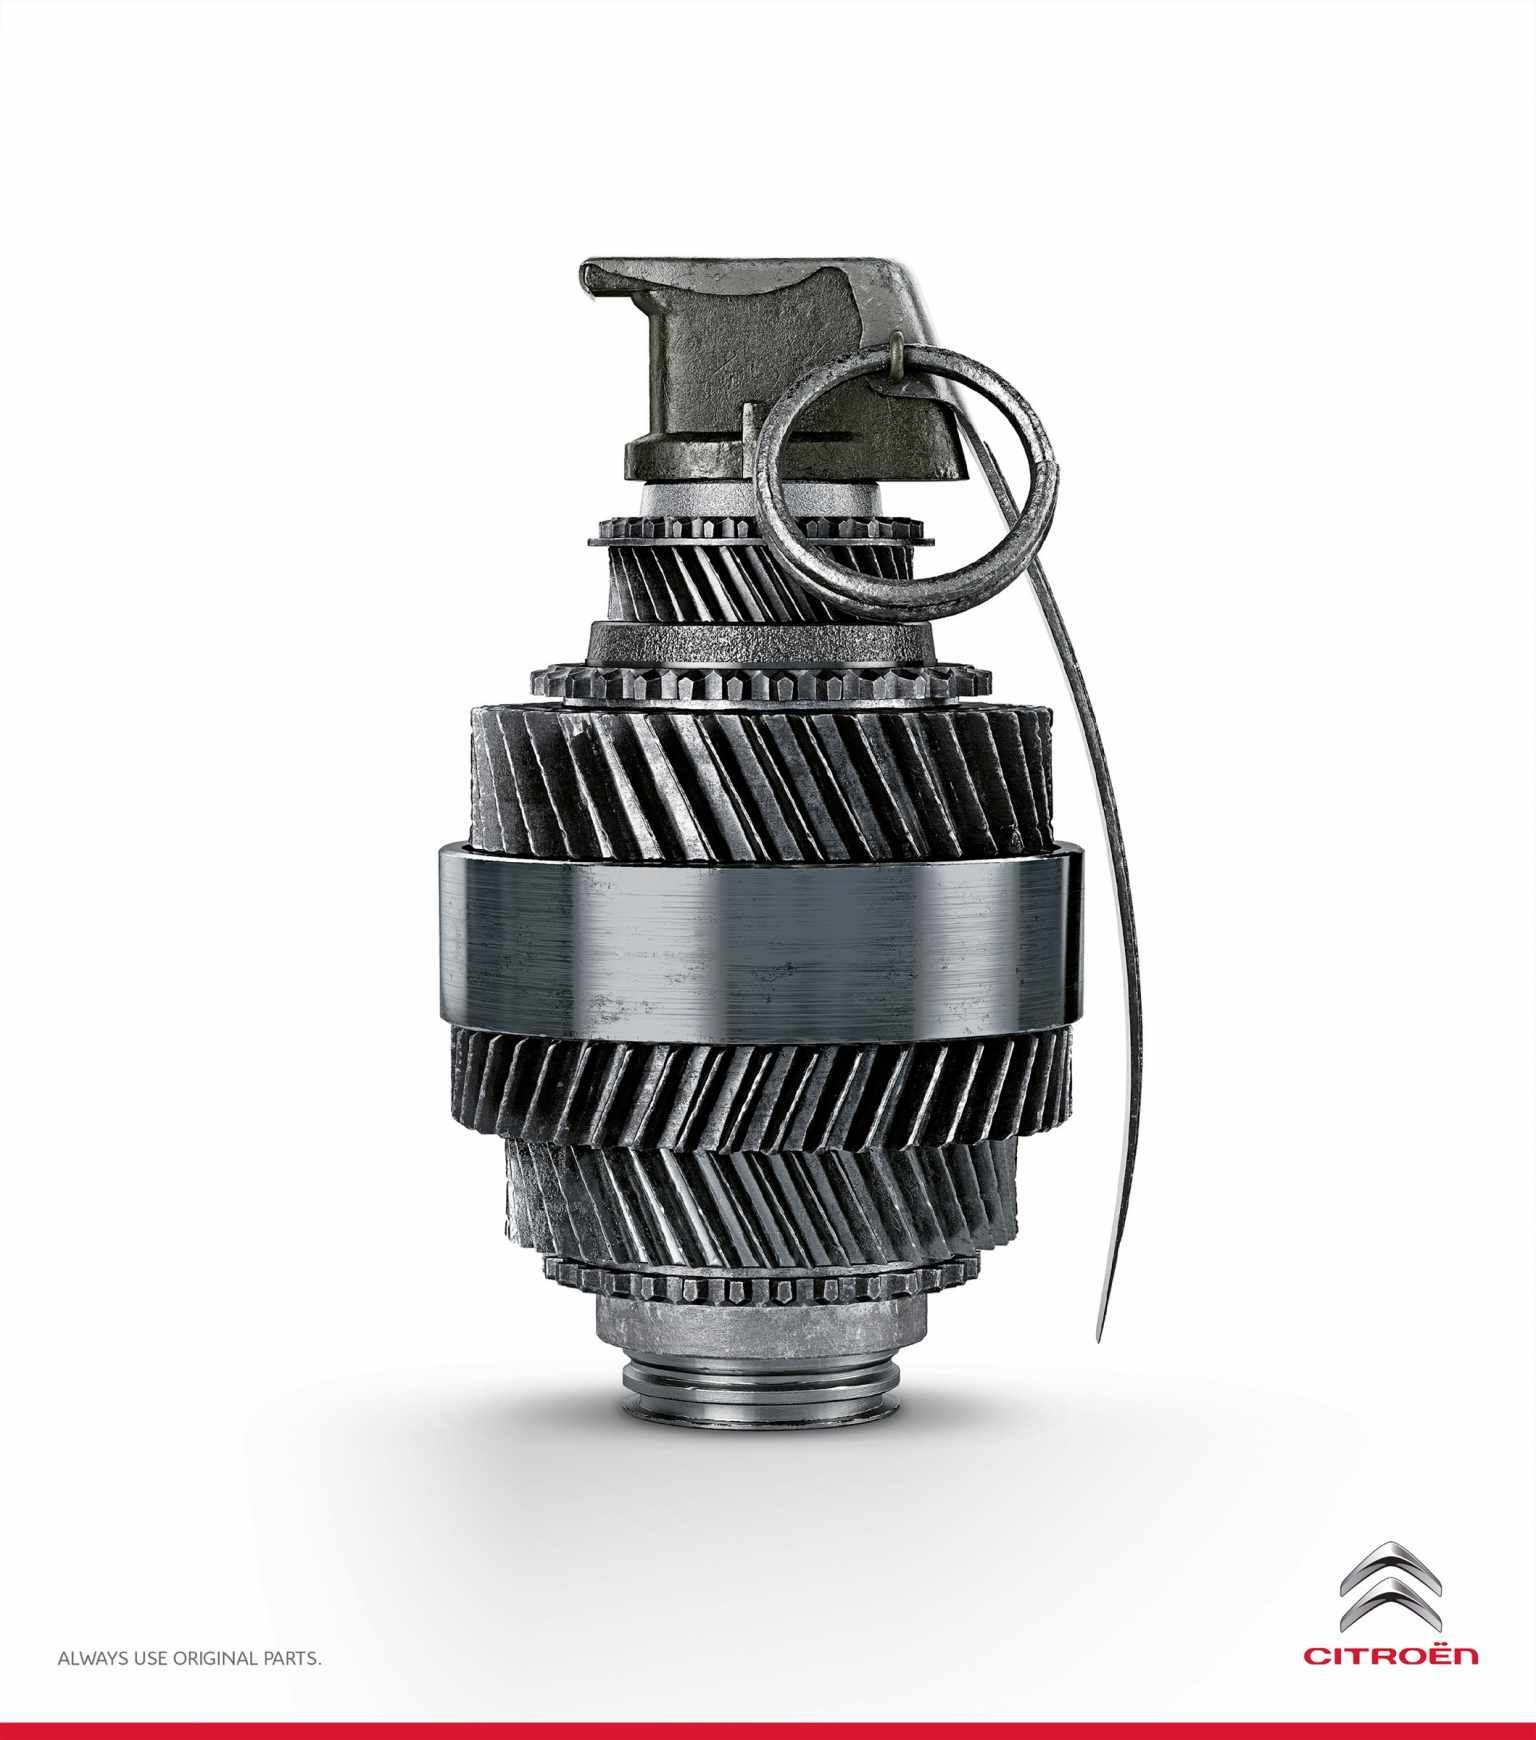 Citroën: Grenade  Always use original parts.  Advertising Agency: Havas Worldwide, São Paulo, Brazil Creative Directors: Sidney Braz, Celio Salles Art Director: Cristian Firmino Copywriter: Felipe Araújo Illustrator: Big Studios Published: November 2013